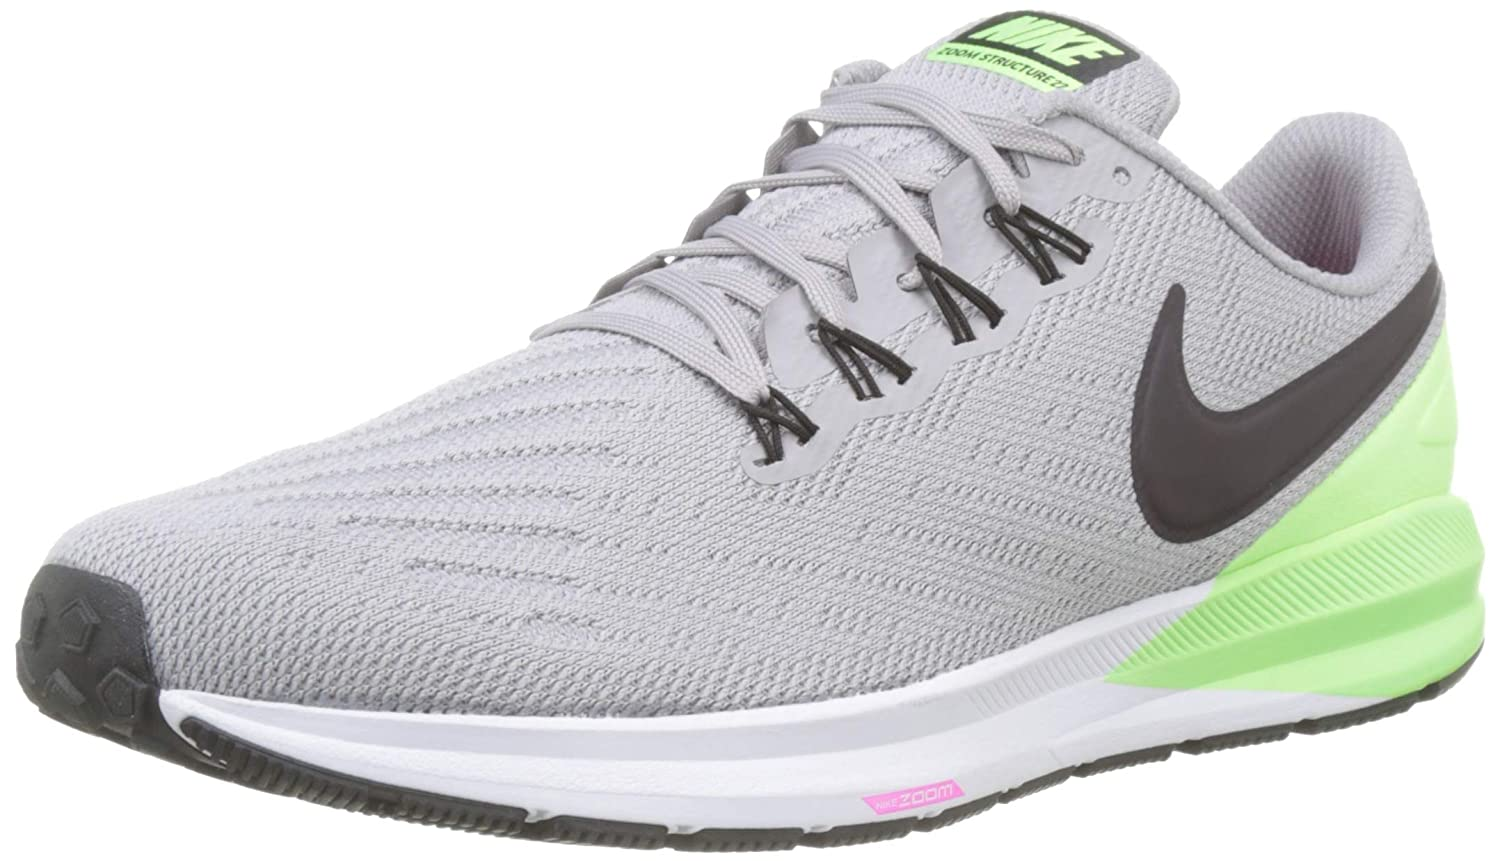 buy popular 9230c 19a0c Nike Men's Air Zoom Structure 22 Running Shoes